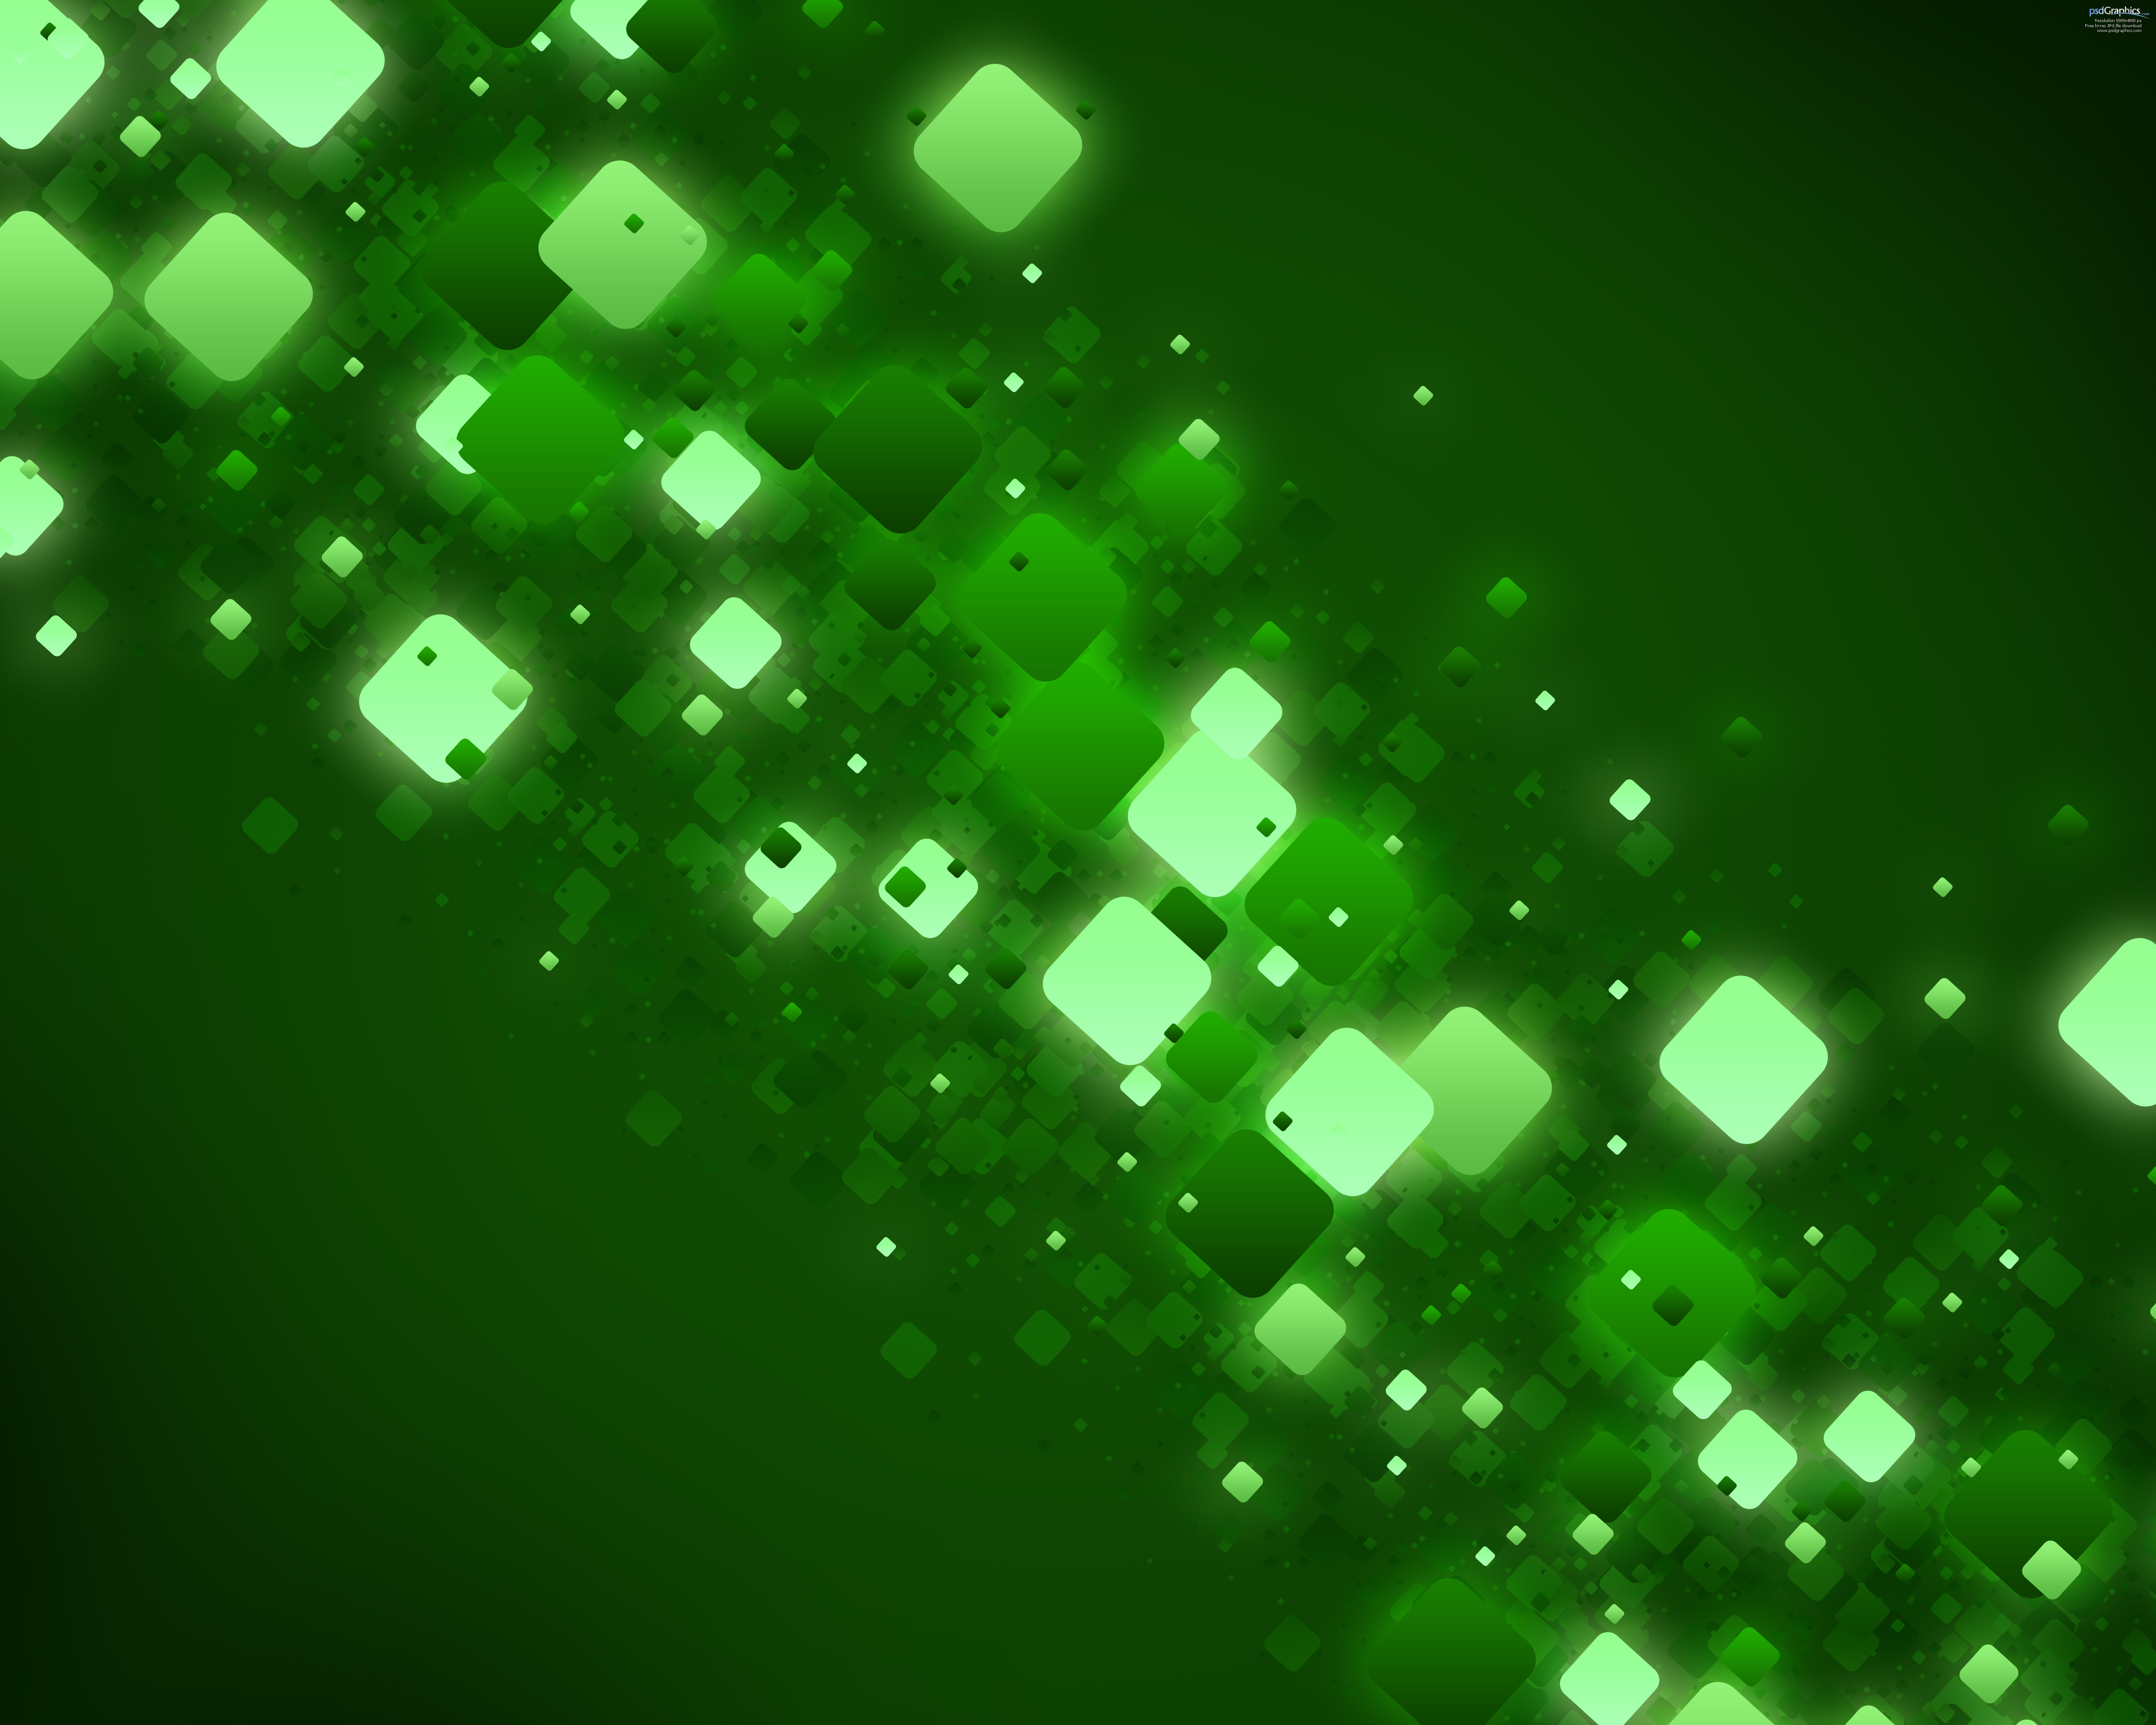 20 Eye Catching Green Backgrounds takedesigns 5000x4000